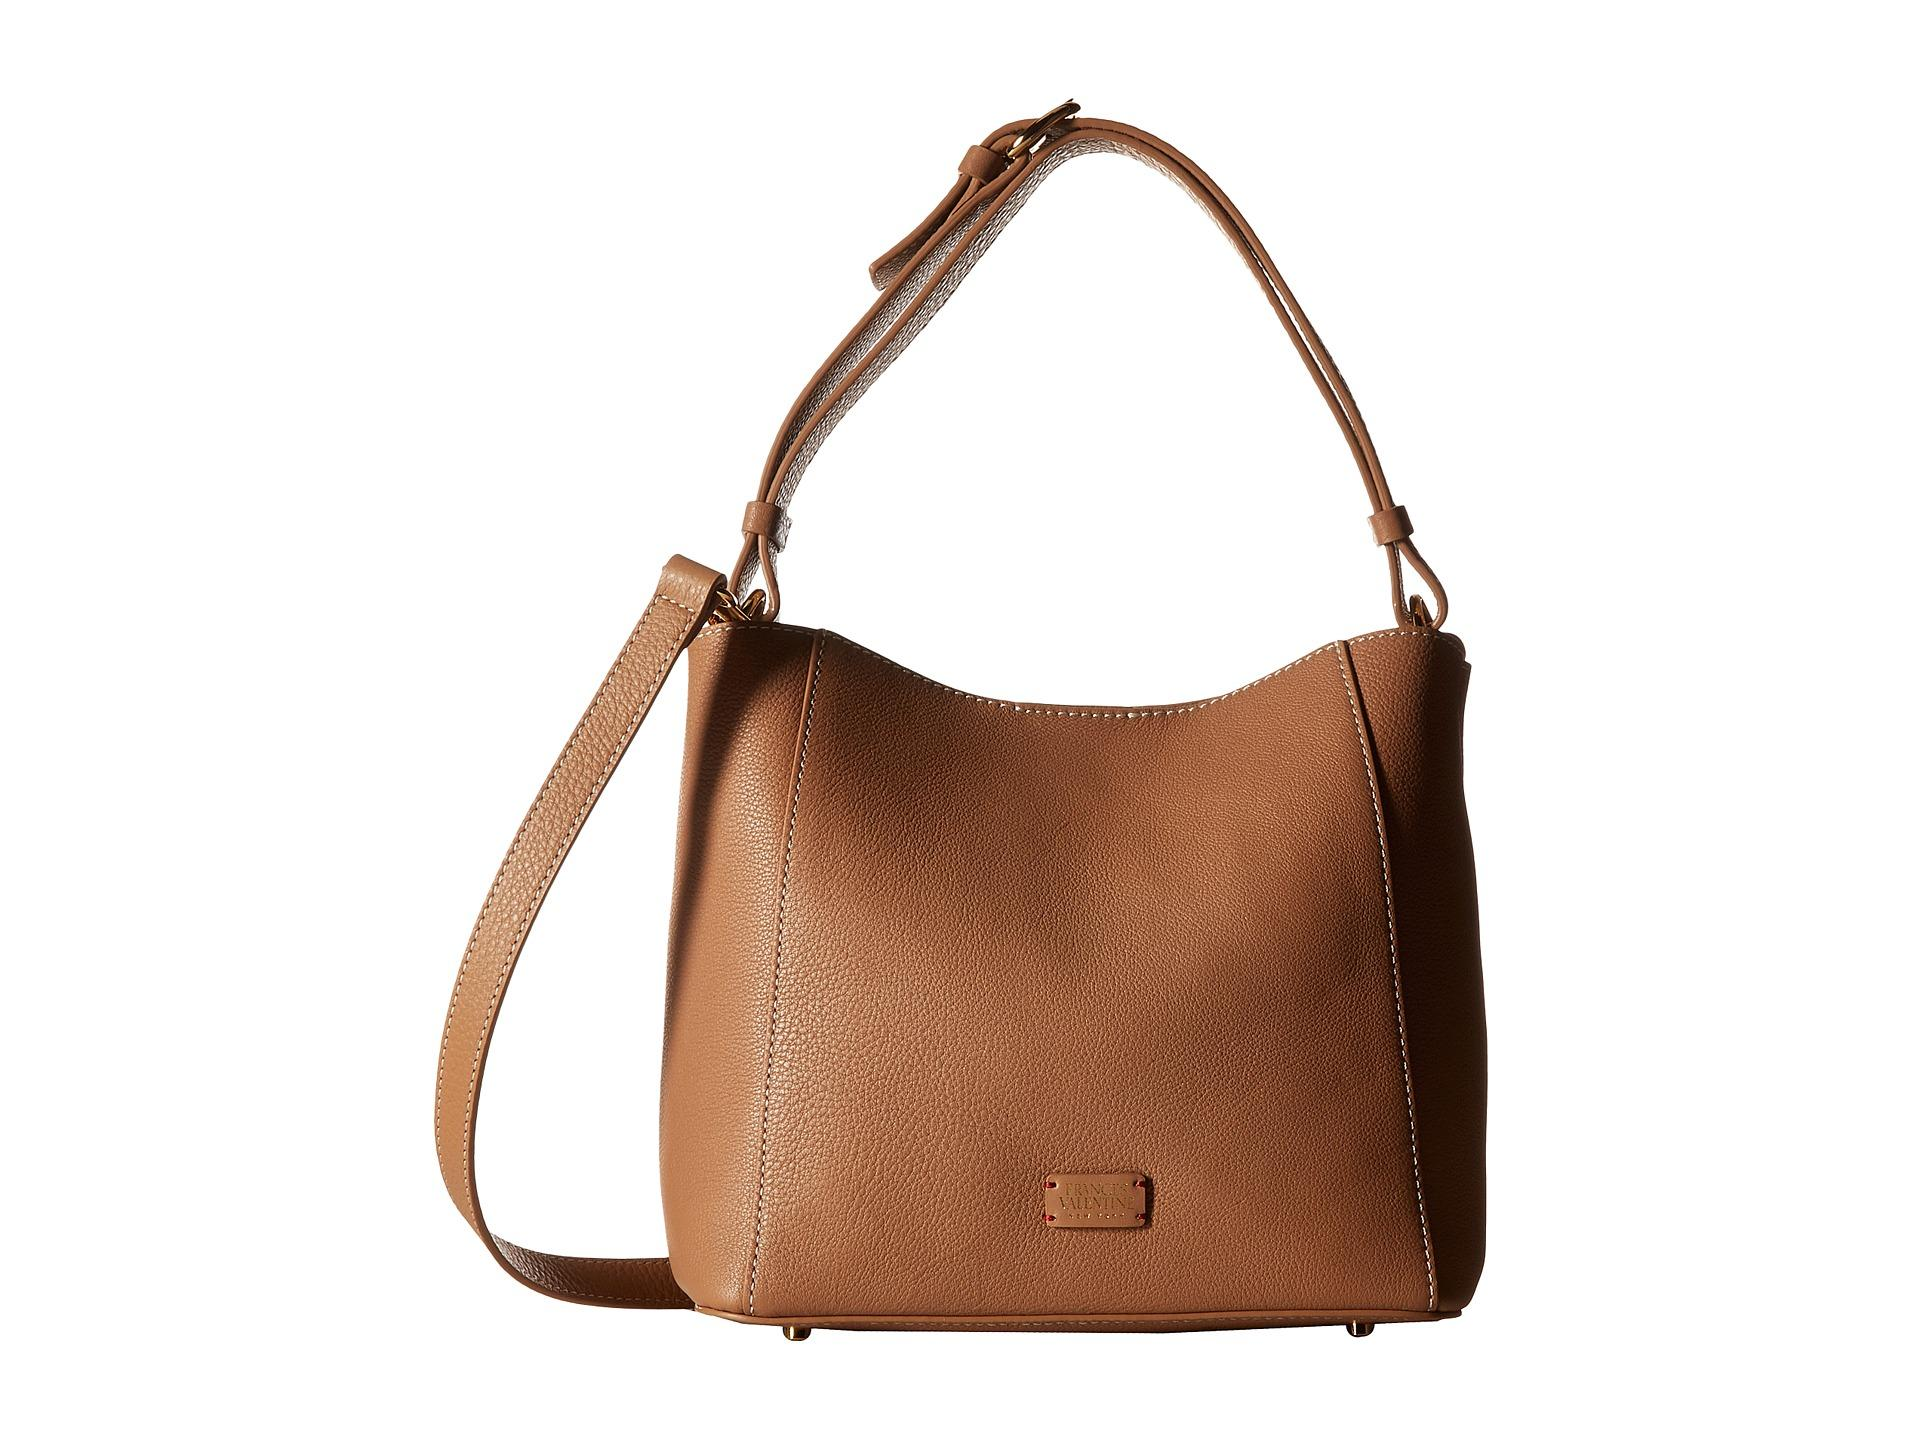 Frances Valentine New Small June Hobo In Brown Lyst